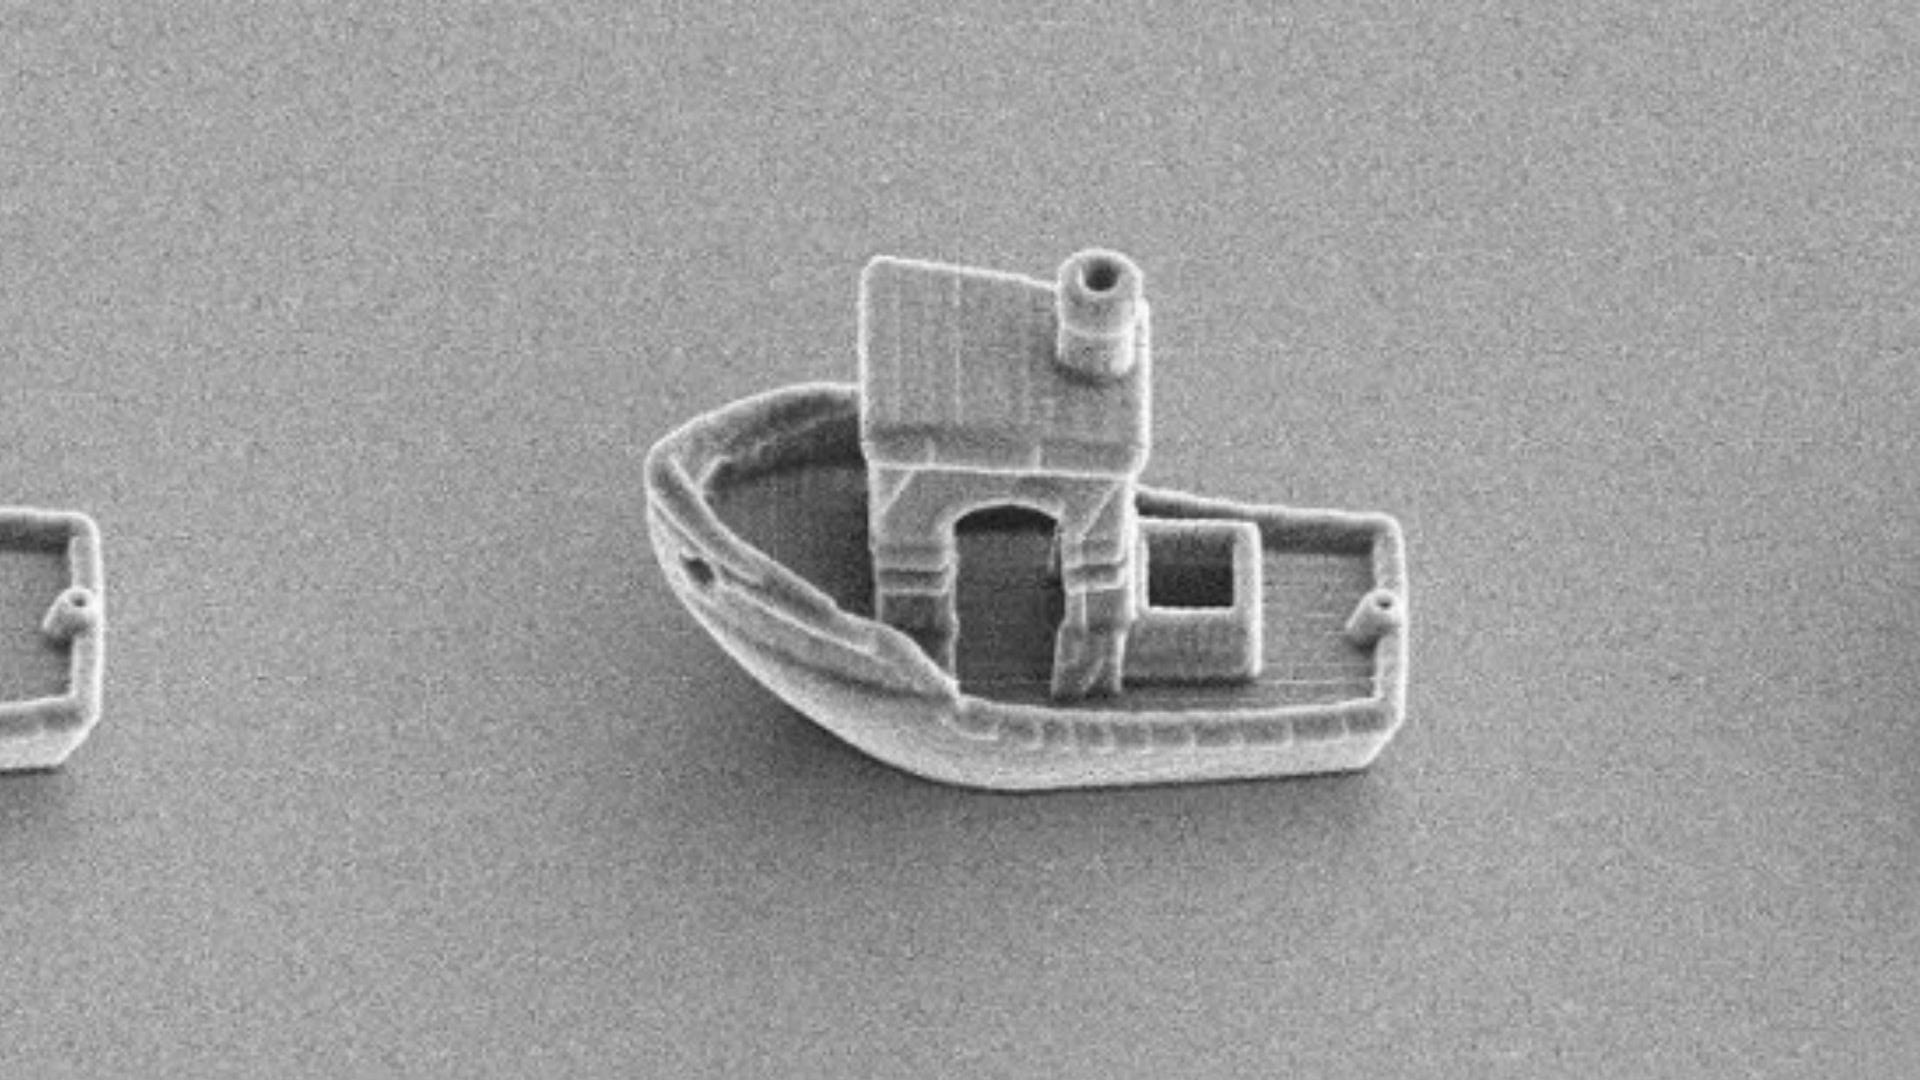 This 3D Printed Boat Is Smaller Than a Single Human Hair thumbnail